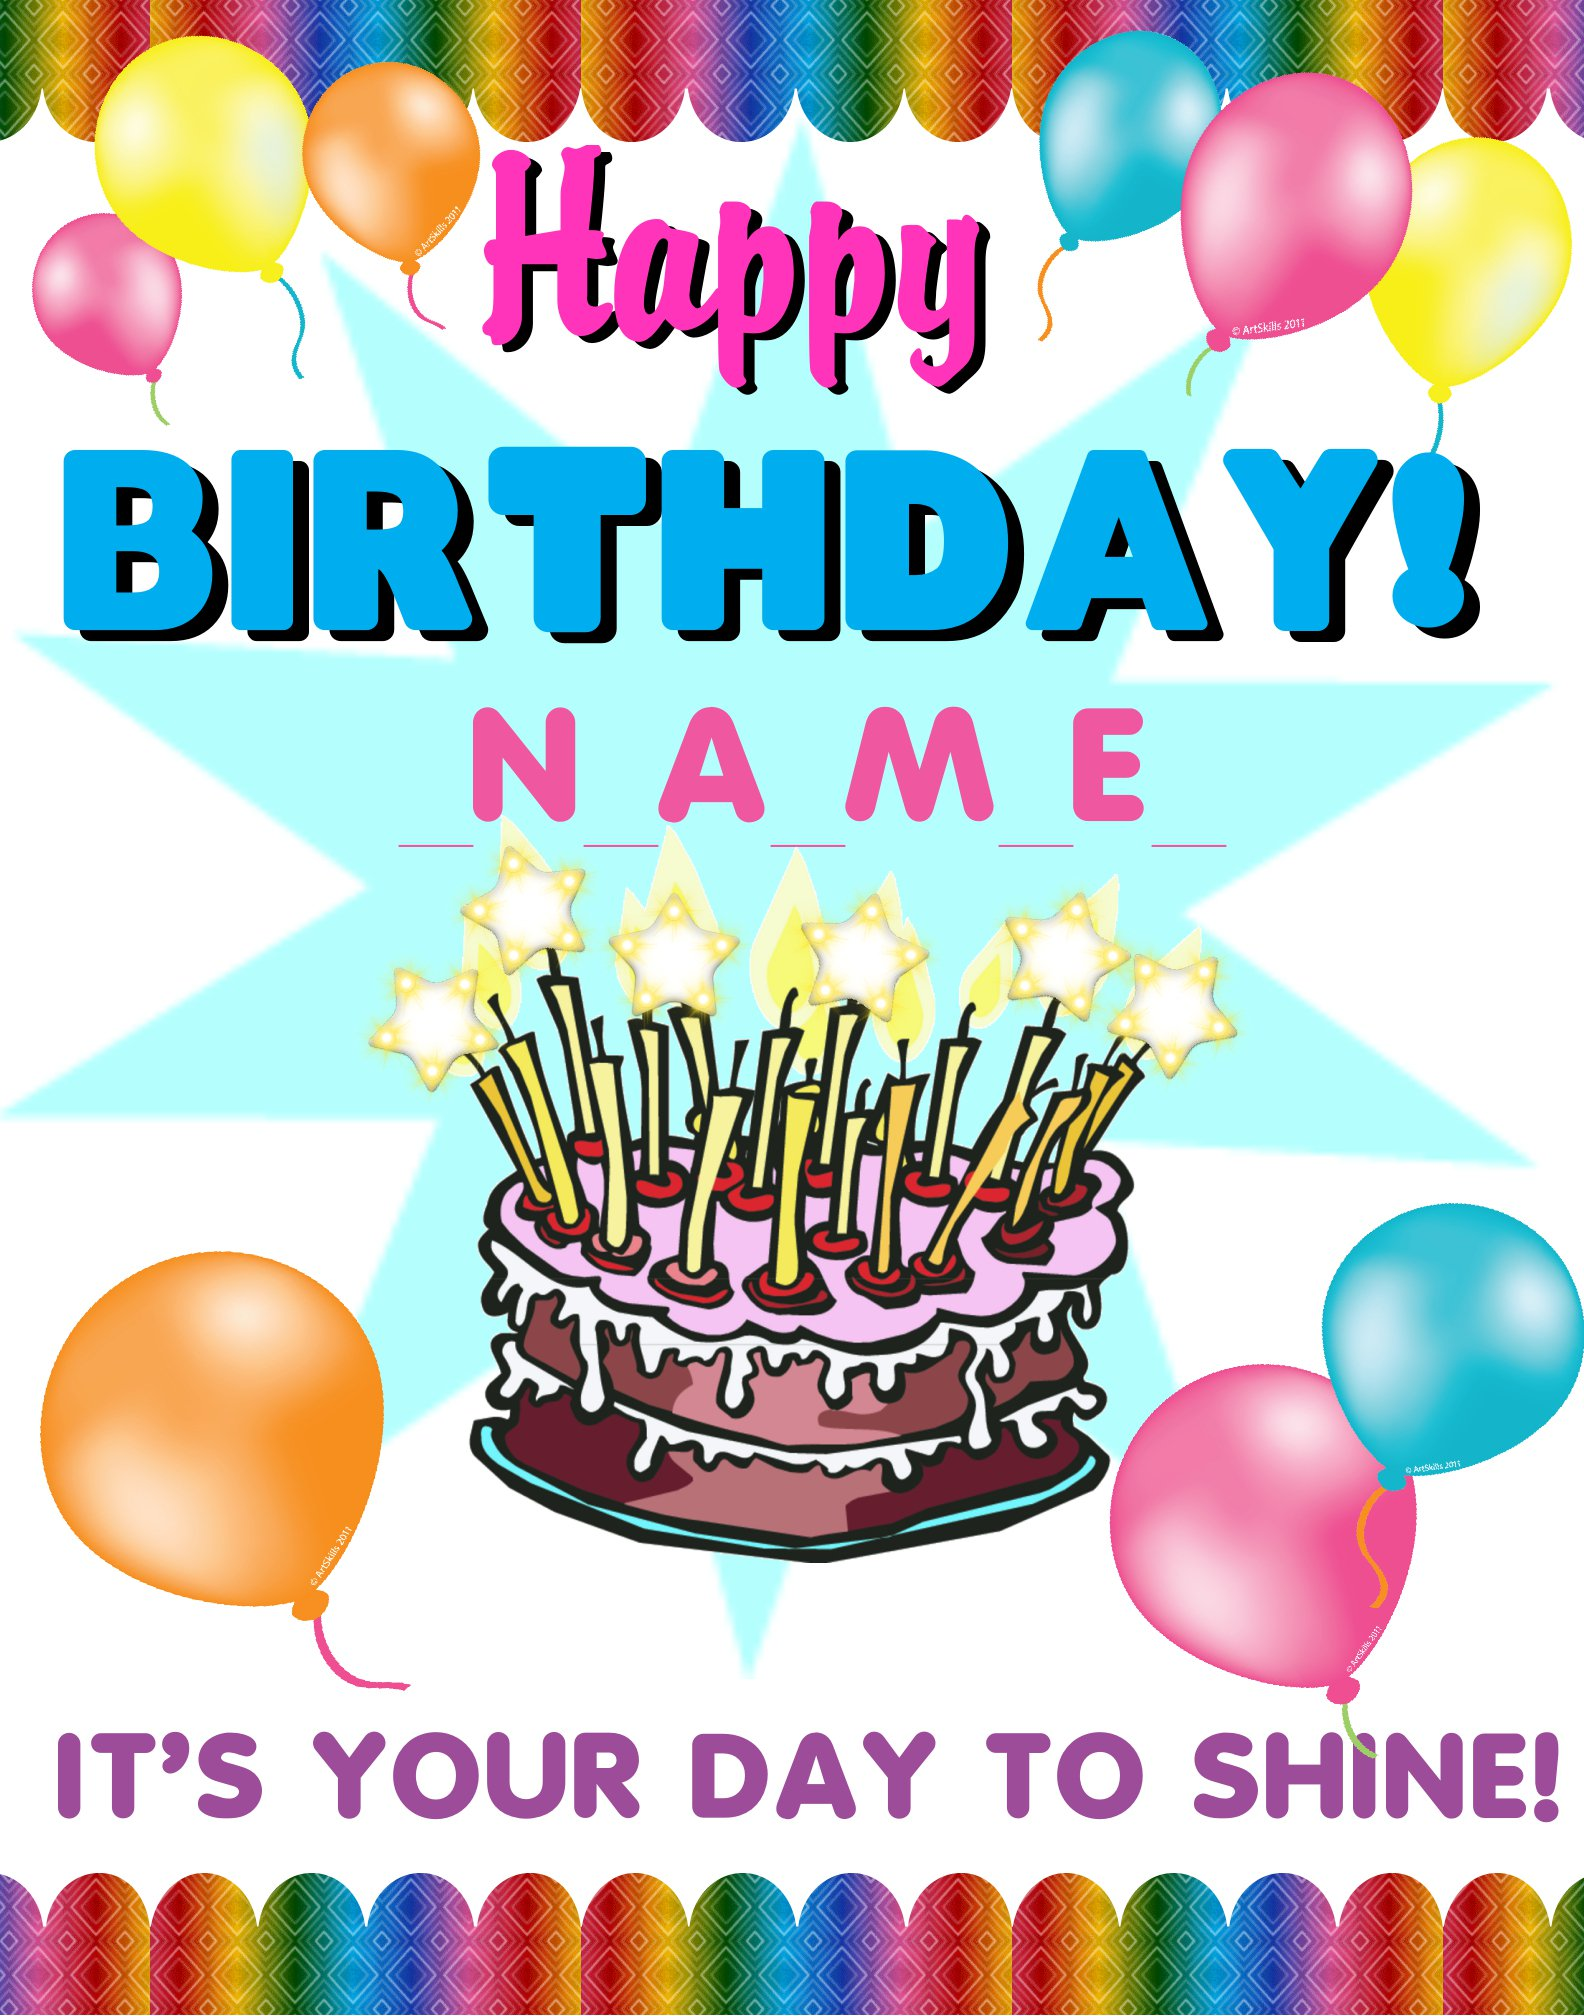 birthday picture poster ideas ; pc5rGgaqi